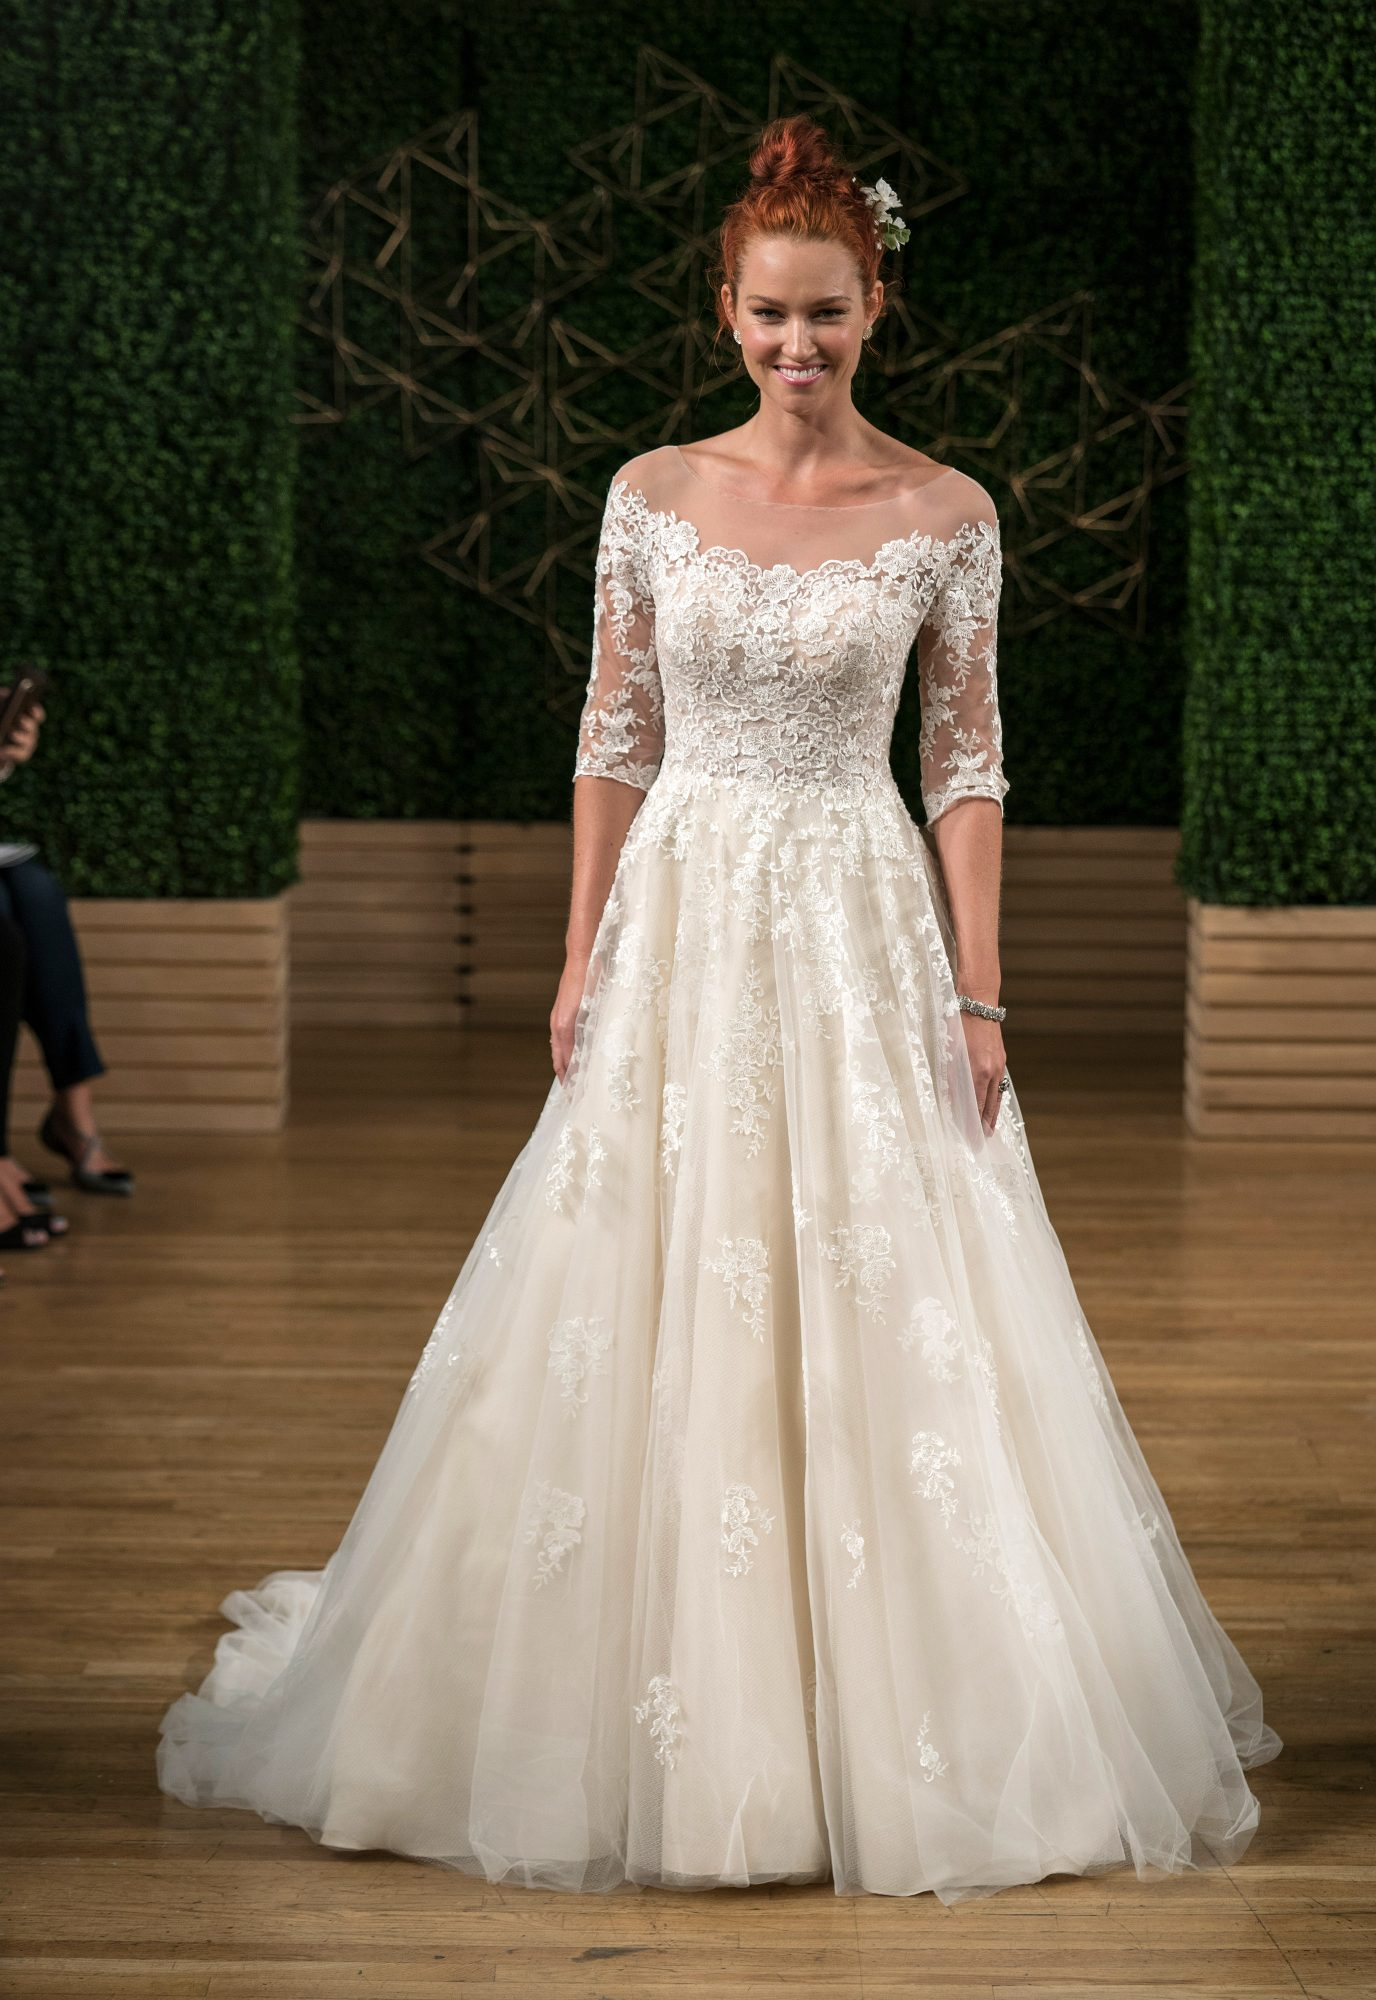 maggie sottero wedding dress fall 2018 off the shoulder lace three quarter length sleeves